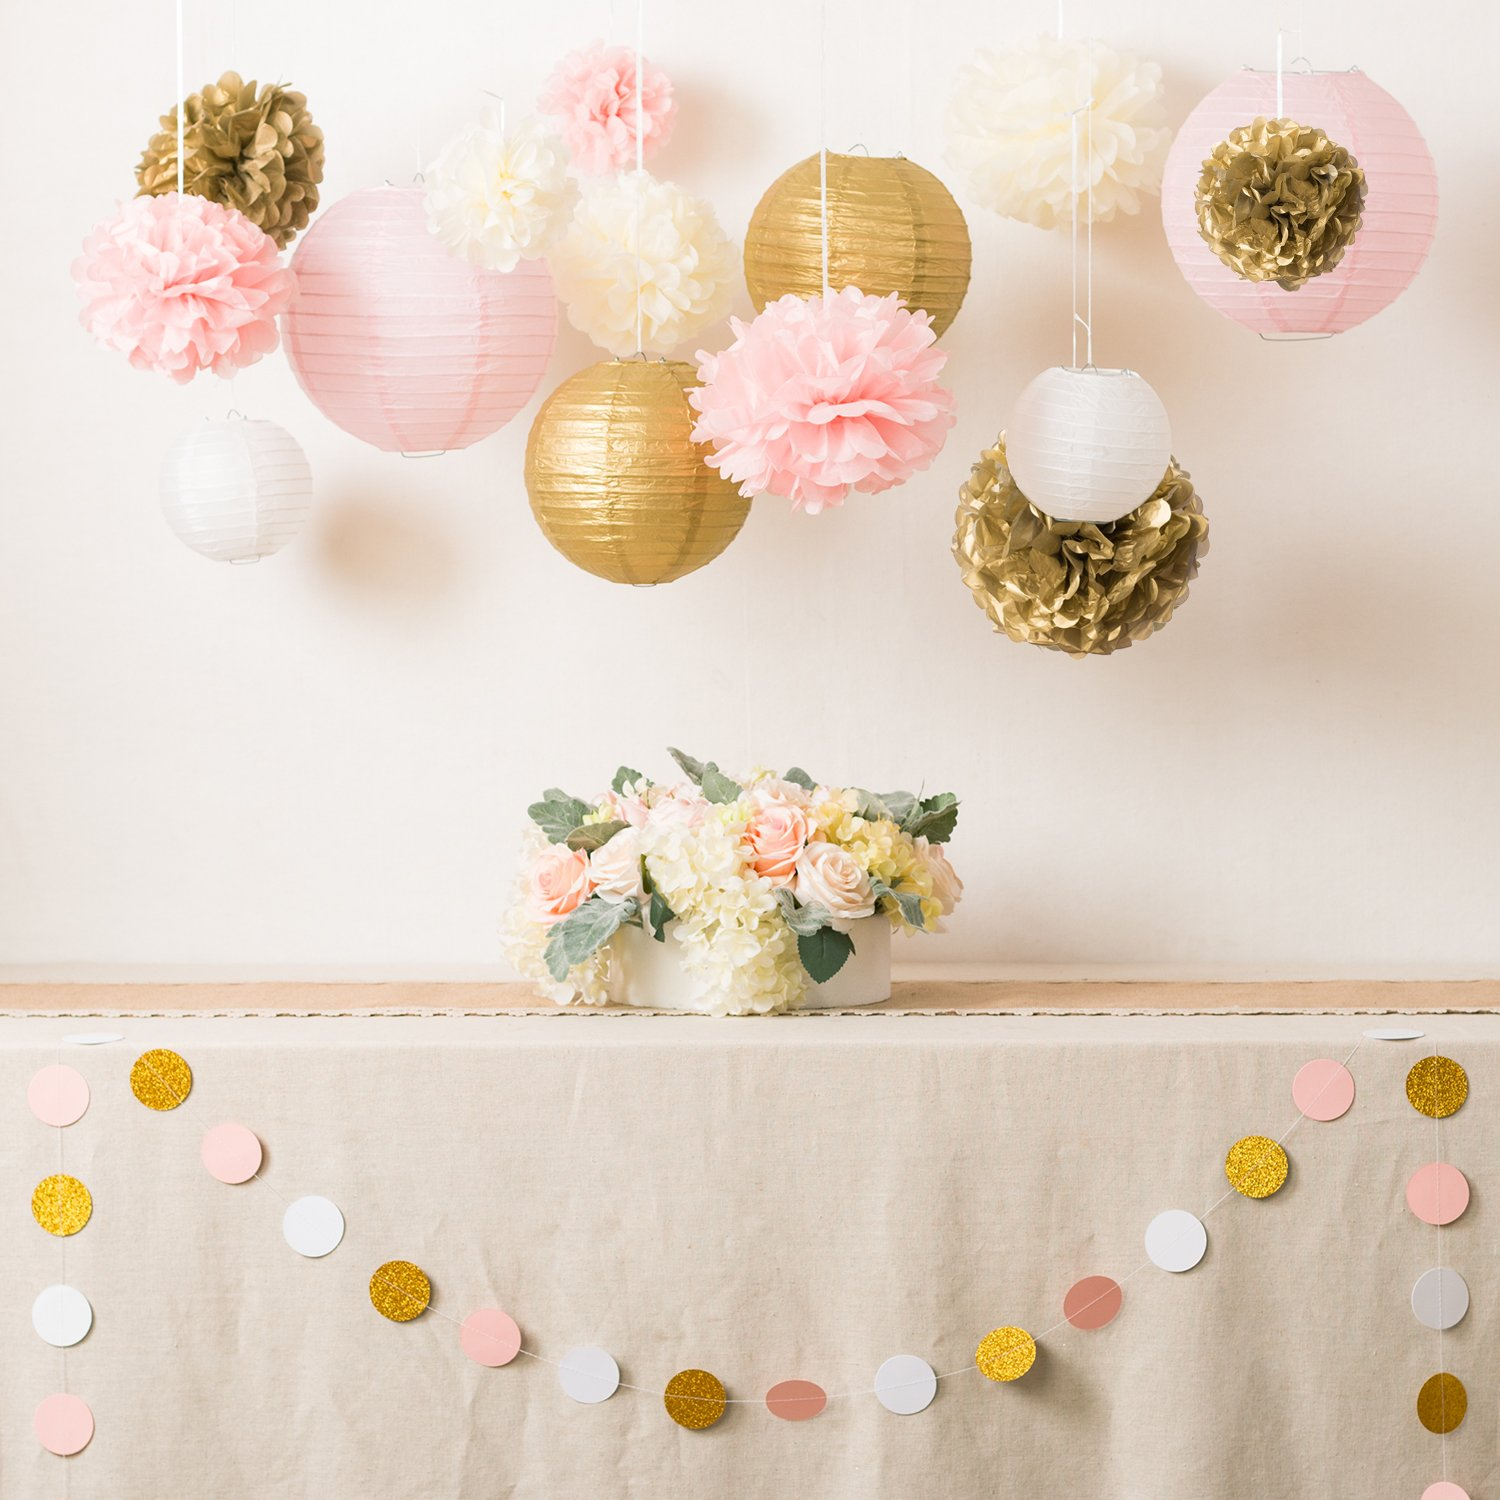 Ling's Moment Tissue Pom Poms Paper Flowers, Paper Lanterns, Circle Dot Garland, Party Decorations Set for Bridal Shower Wedding Birthday Baby Shower Christmas, Dessert Table Decoration Suplies